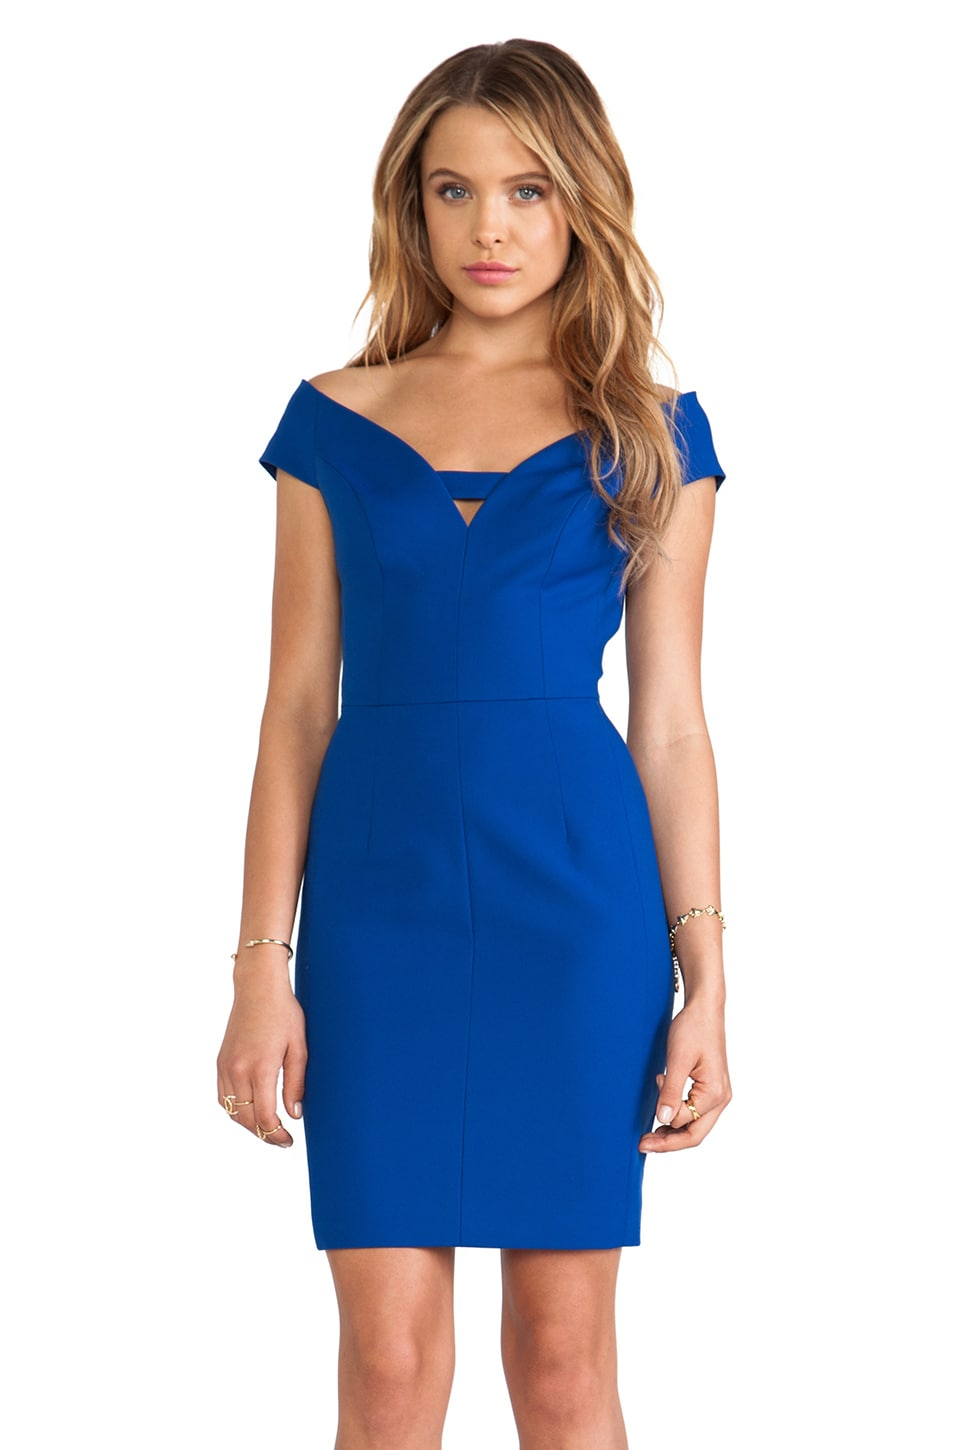 Black Halo Riya Mini Sheath Dress in Dragonfly Blue